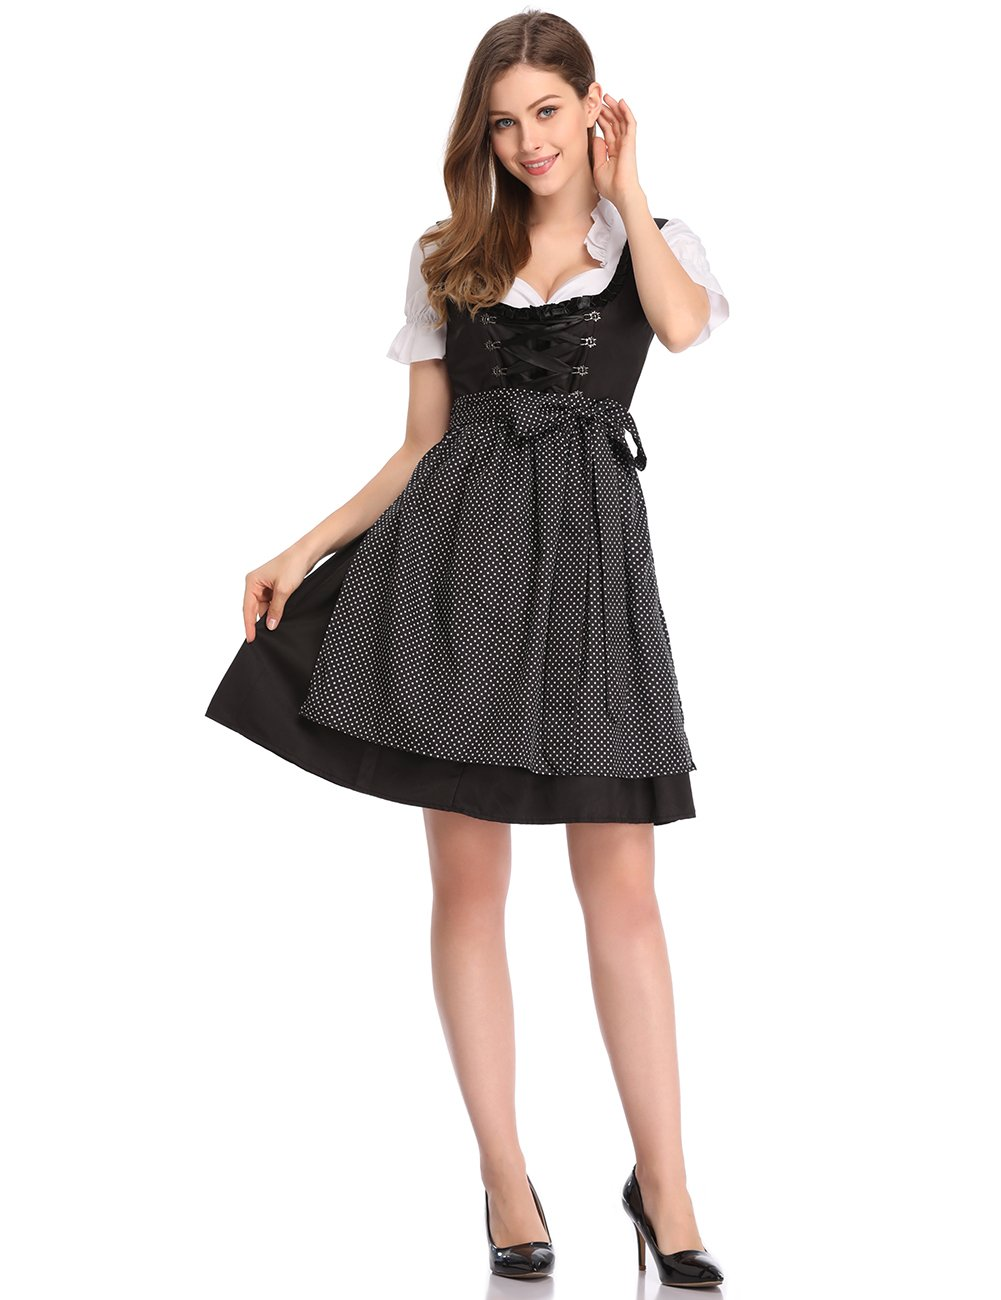 Clearlove Different Style Traditional Dirndl Dress Blouse Apron for Oktoberfest (XL, Black)